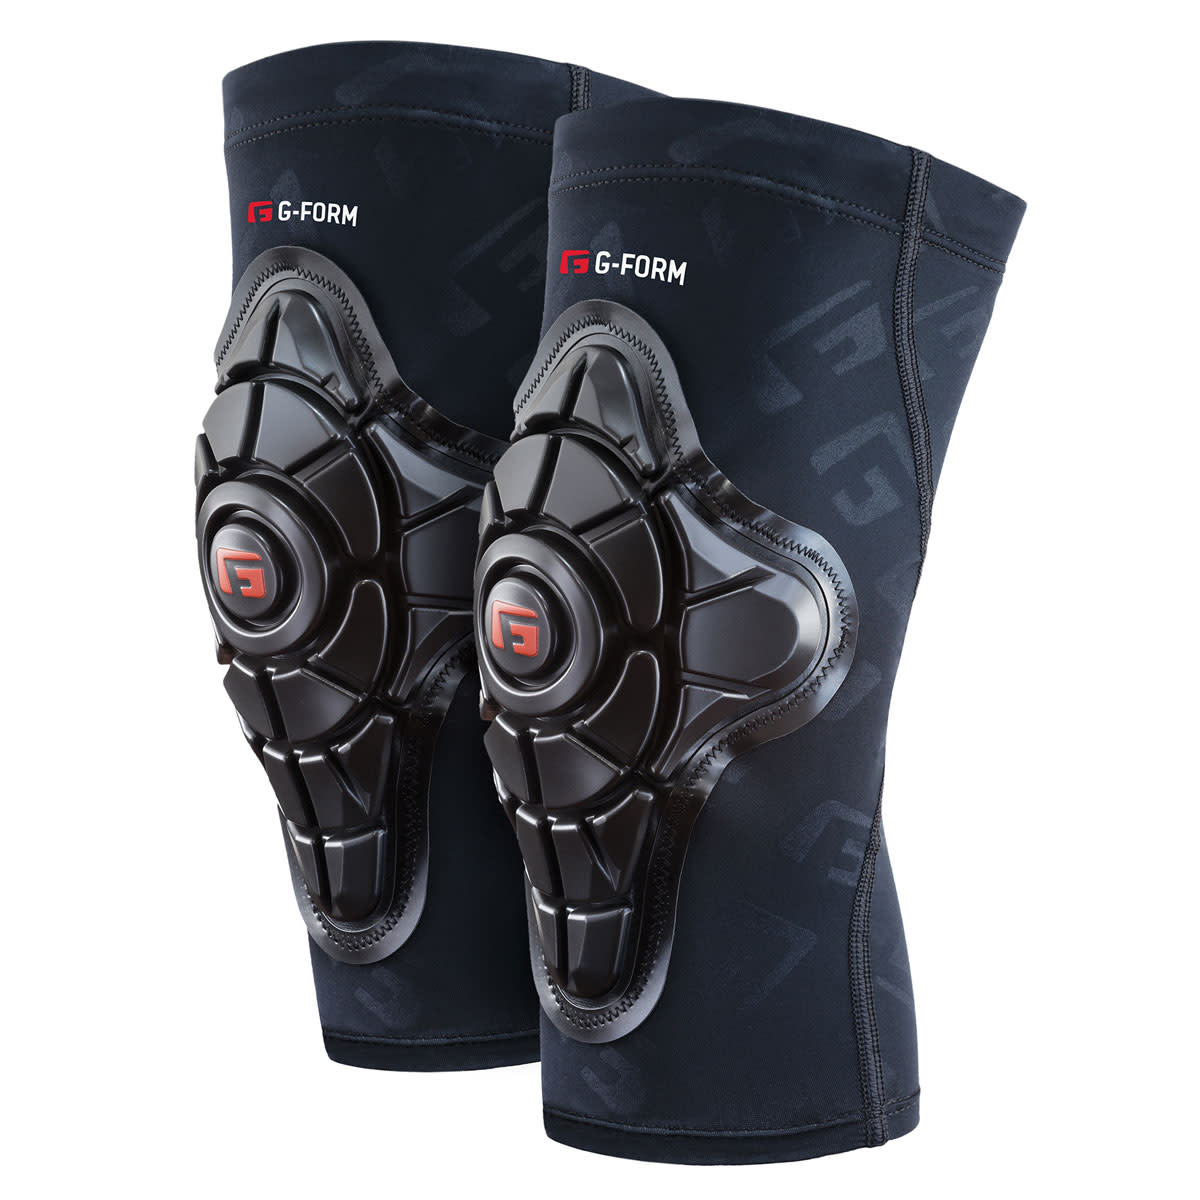 G-Form, Pro-X, Knee Pads, Unisex, Black, XL